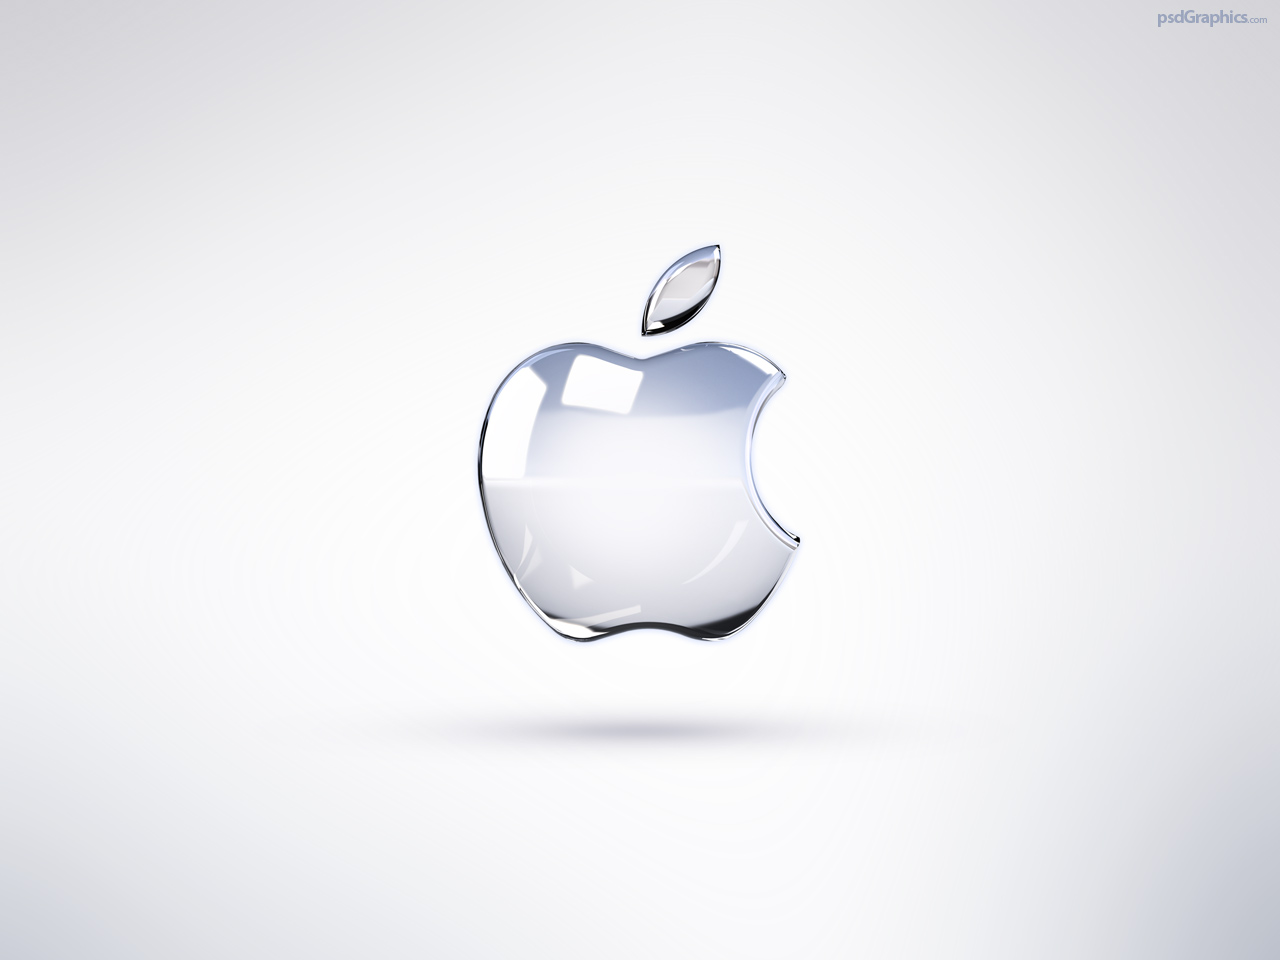 Apple logo wallpaper Wallpaper